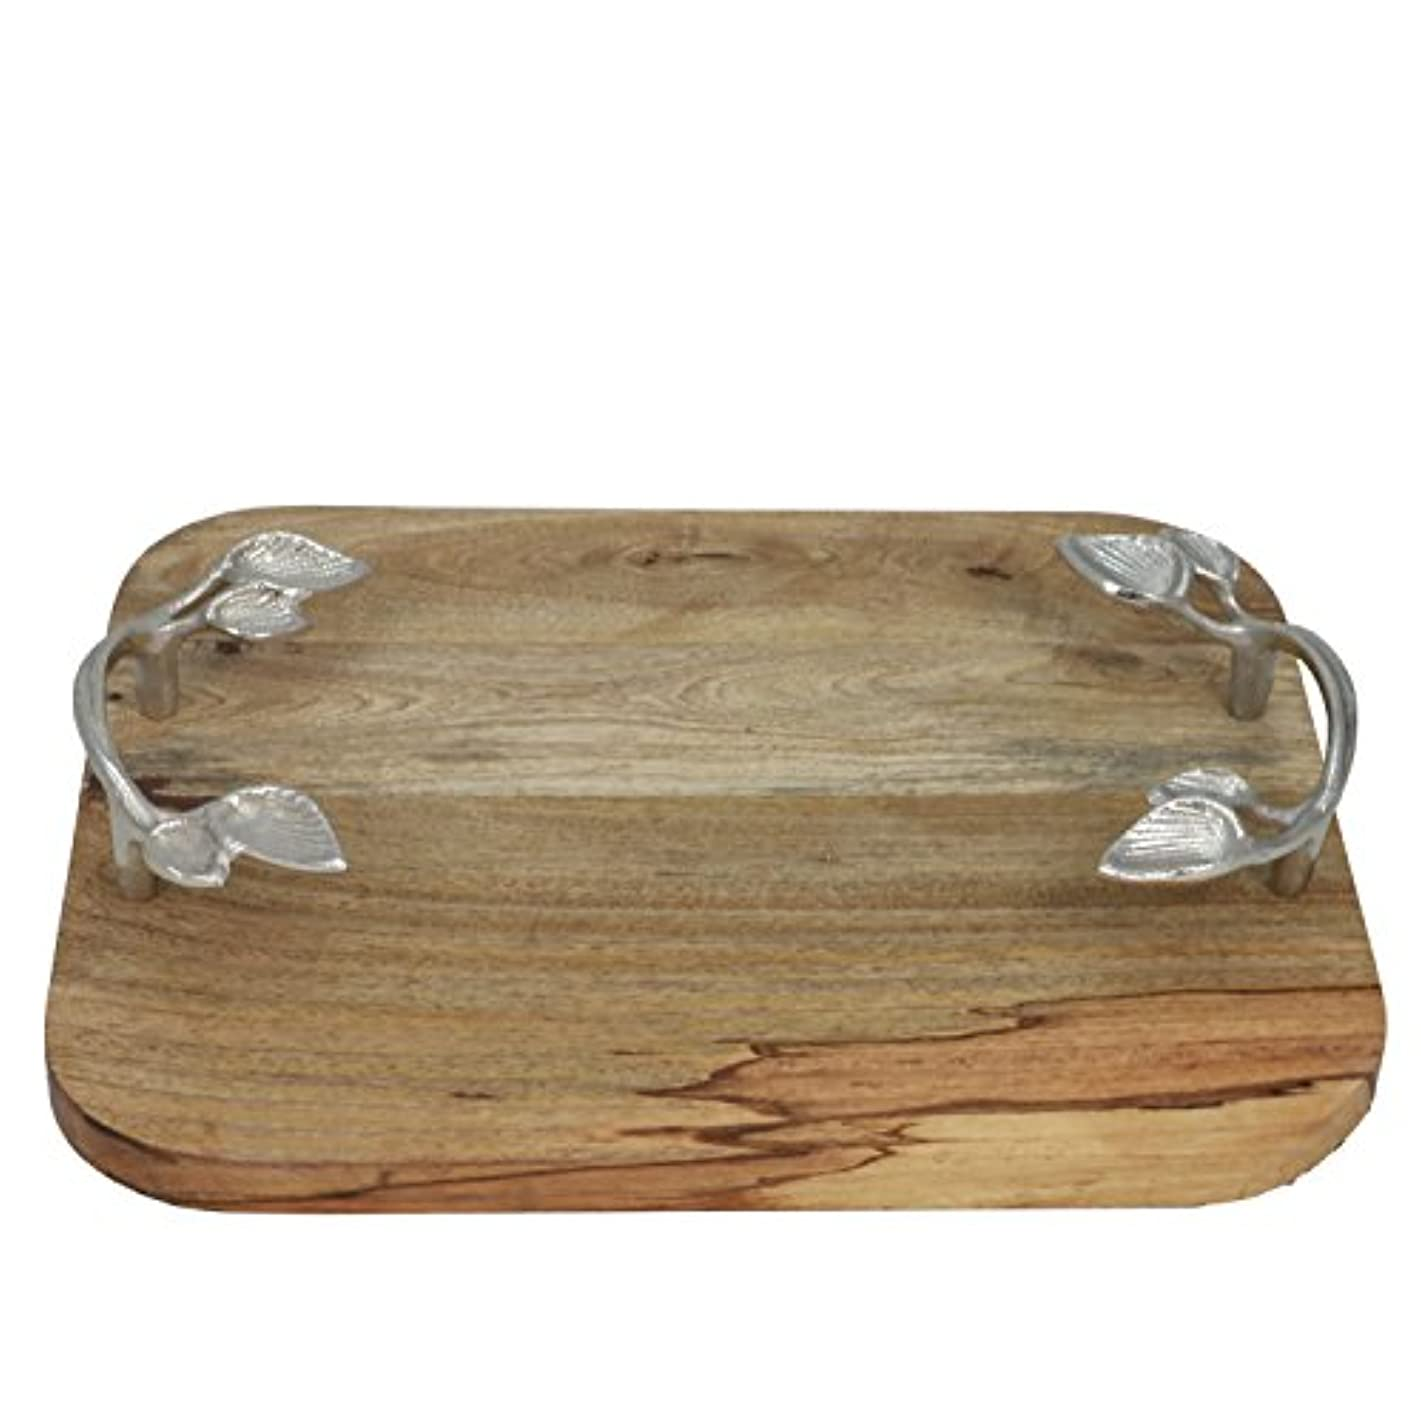 TIC Collection 62-536 Natural Tray